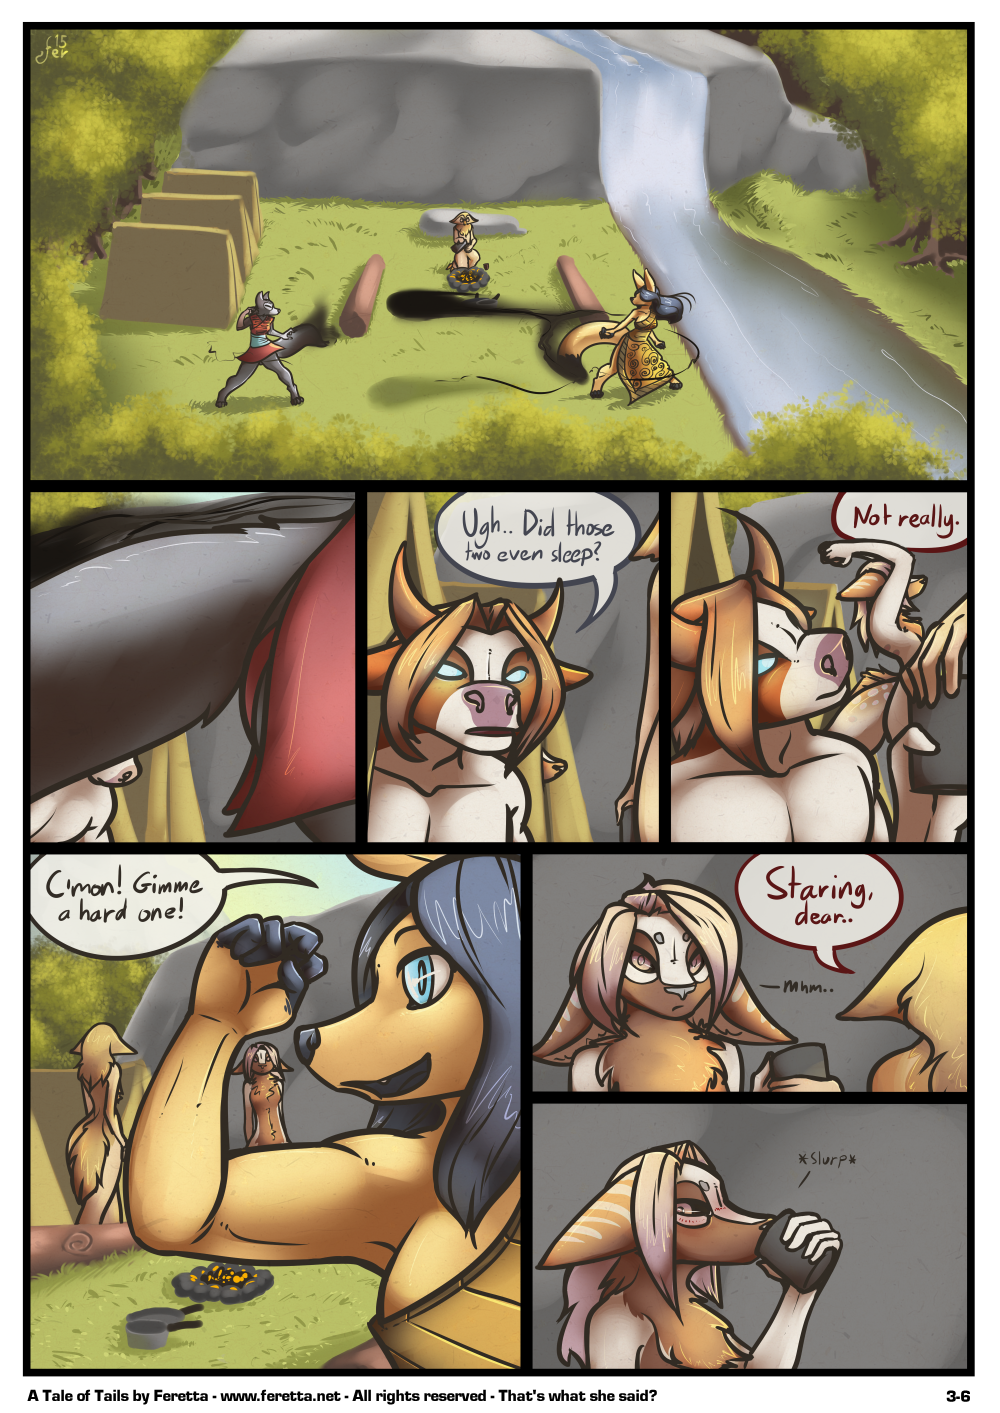 A Tale of Tails, 3-6